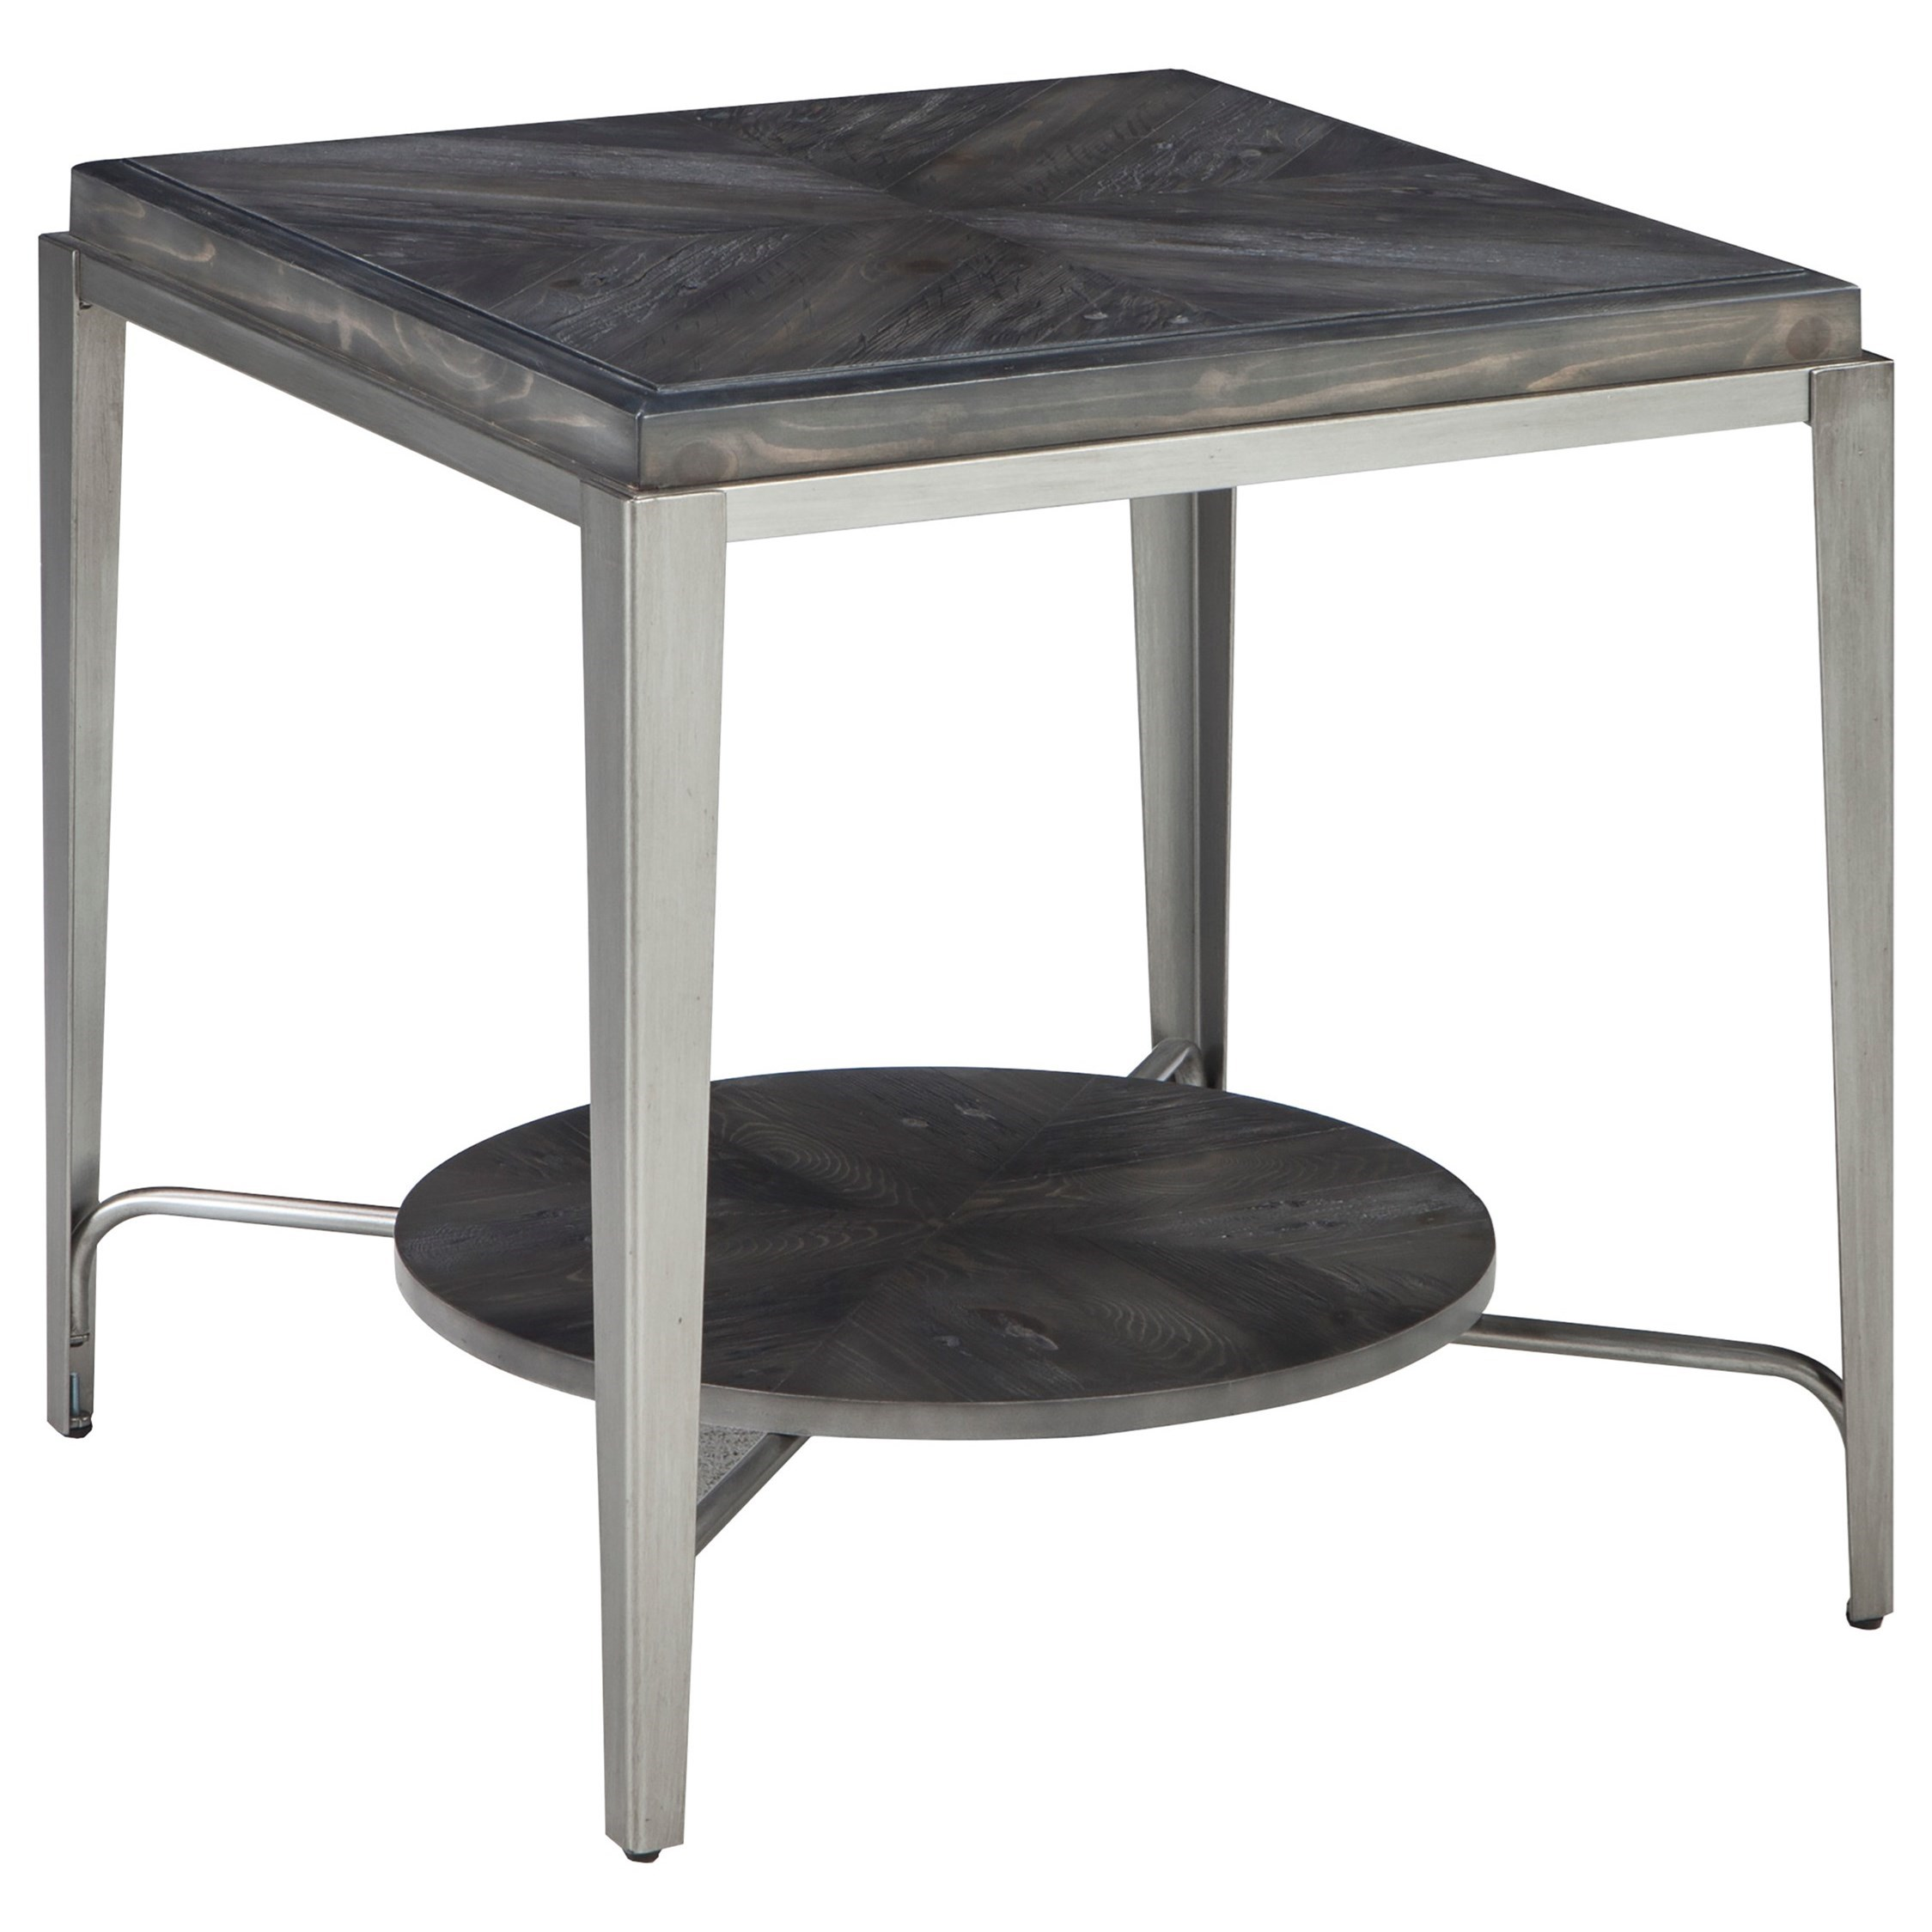 Signature Design by Ashley Flandyn Square End Table - Item Number: T710-2